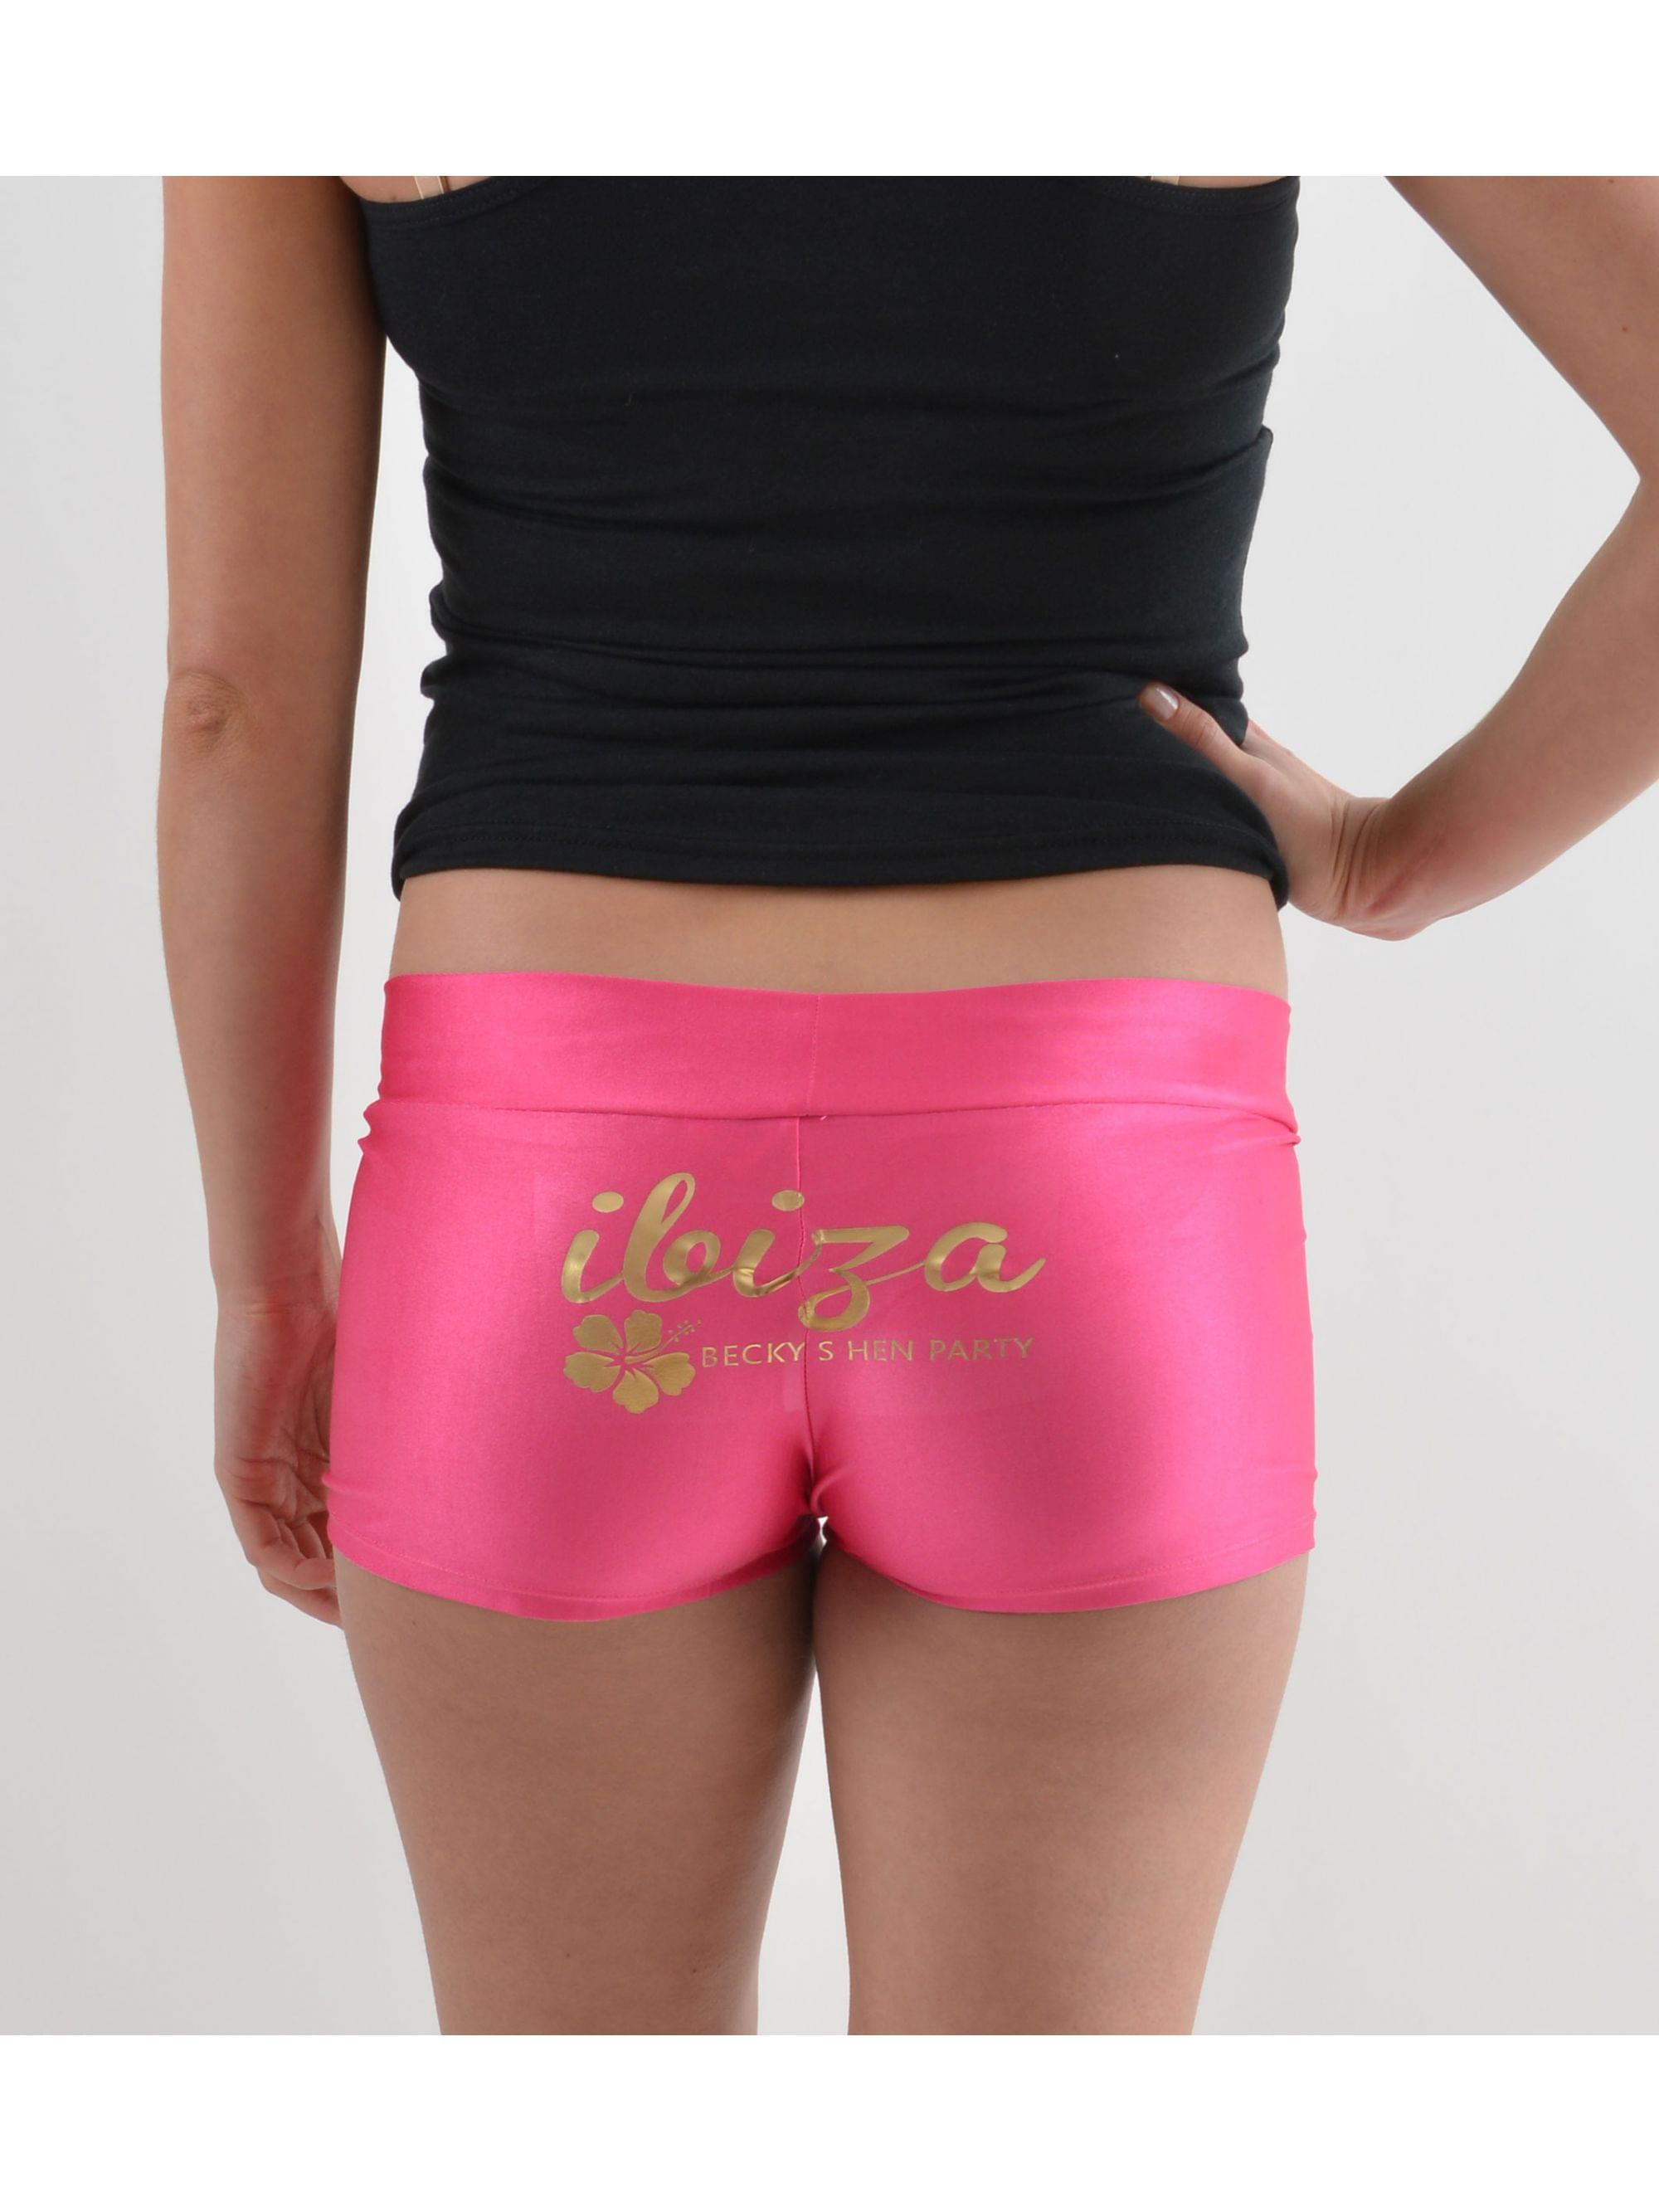 084b17afe741 Hen Party Superstore Personalised Bright Pink Hot Pants ...